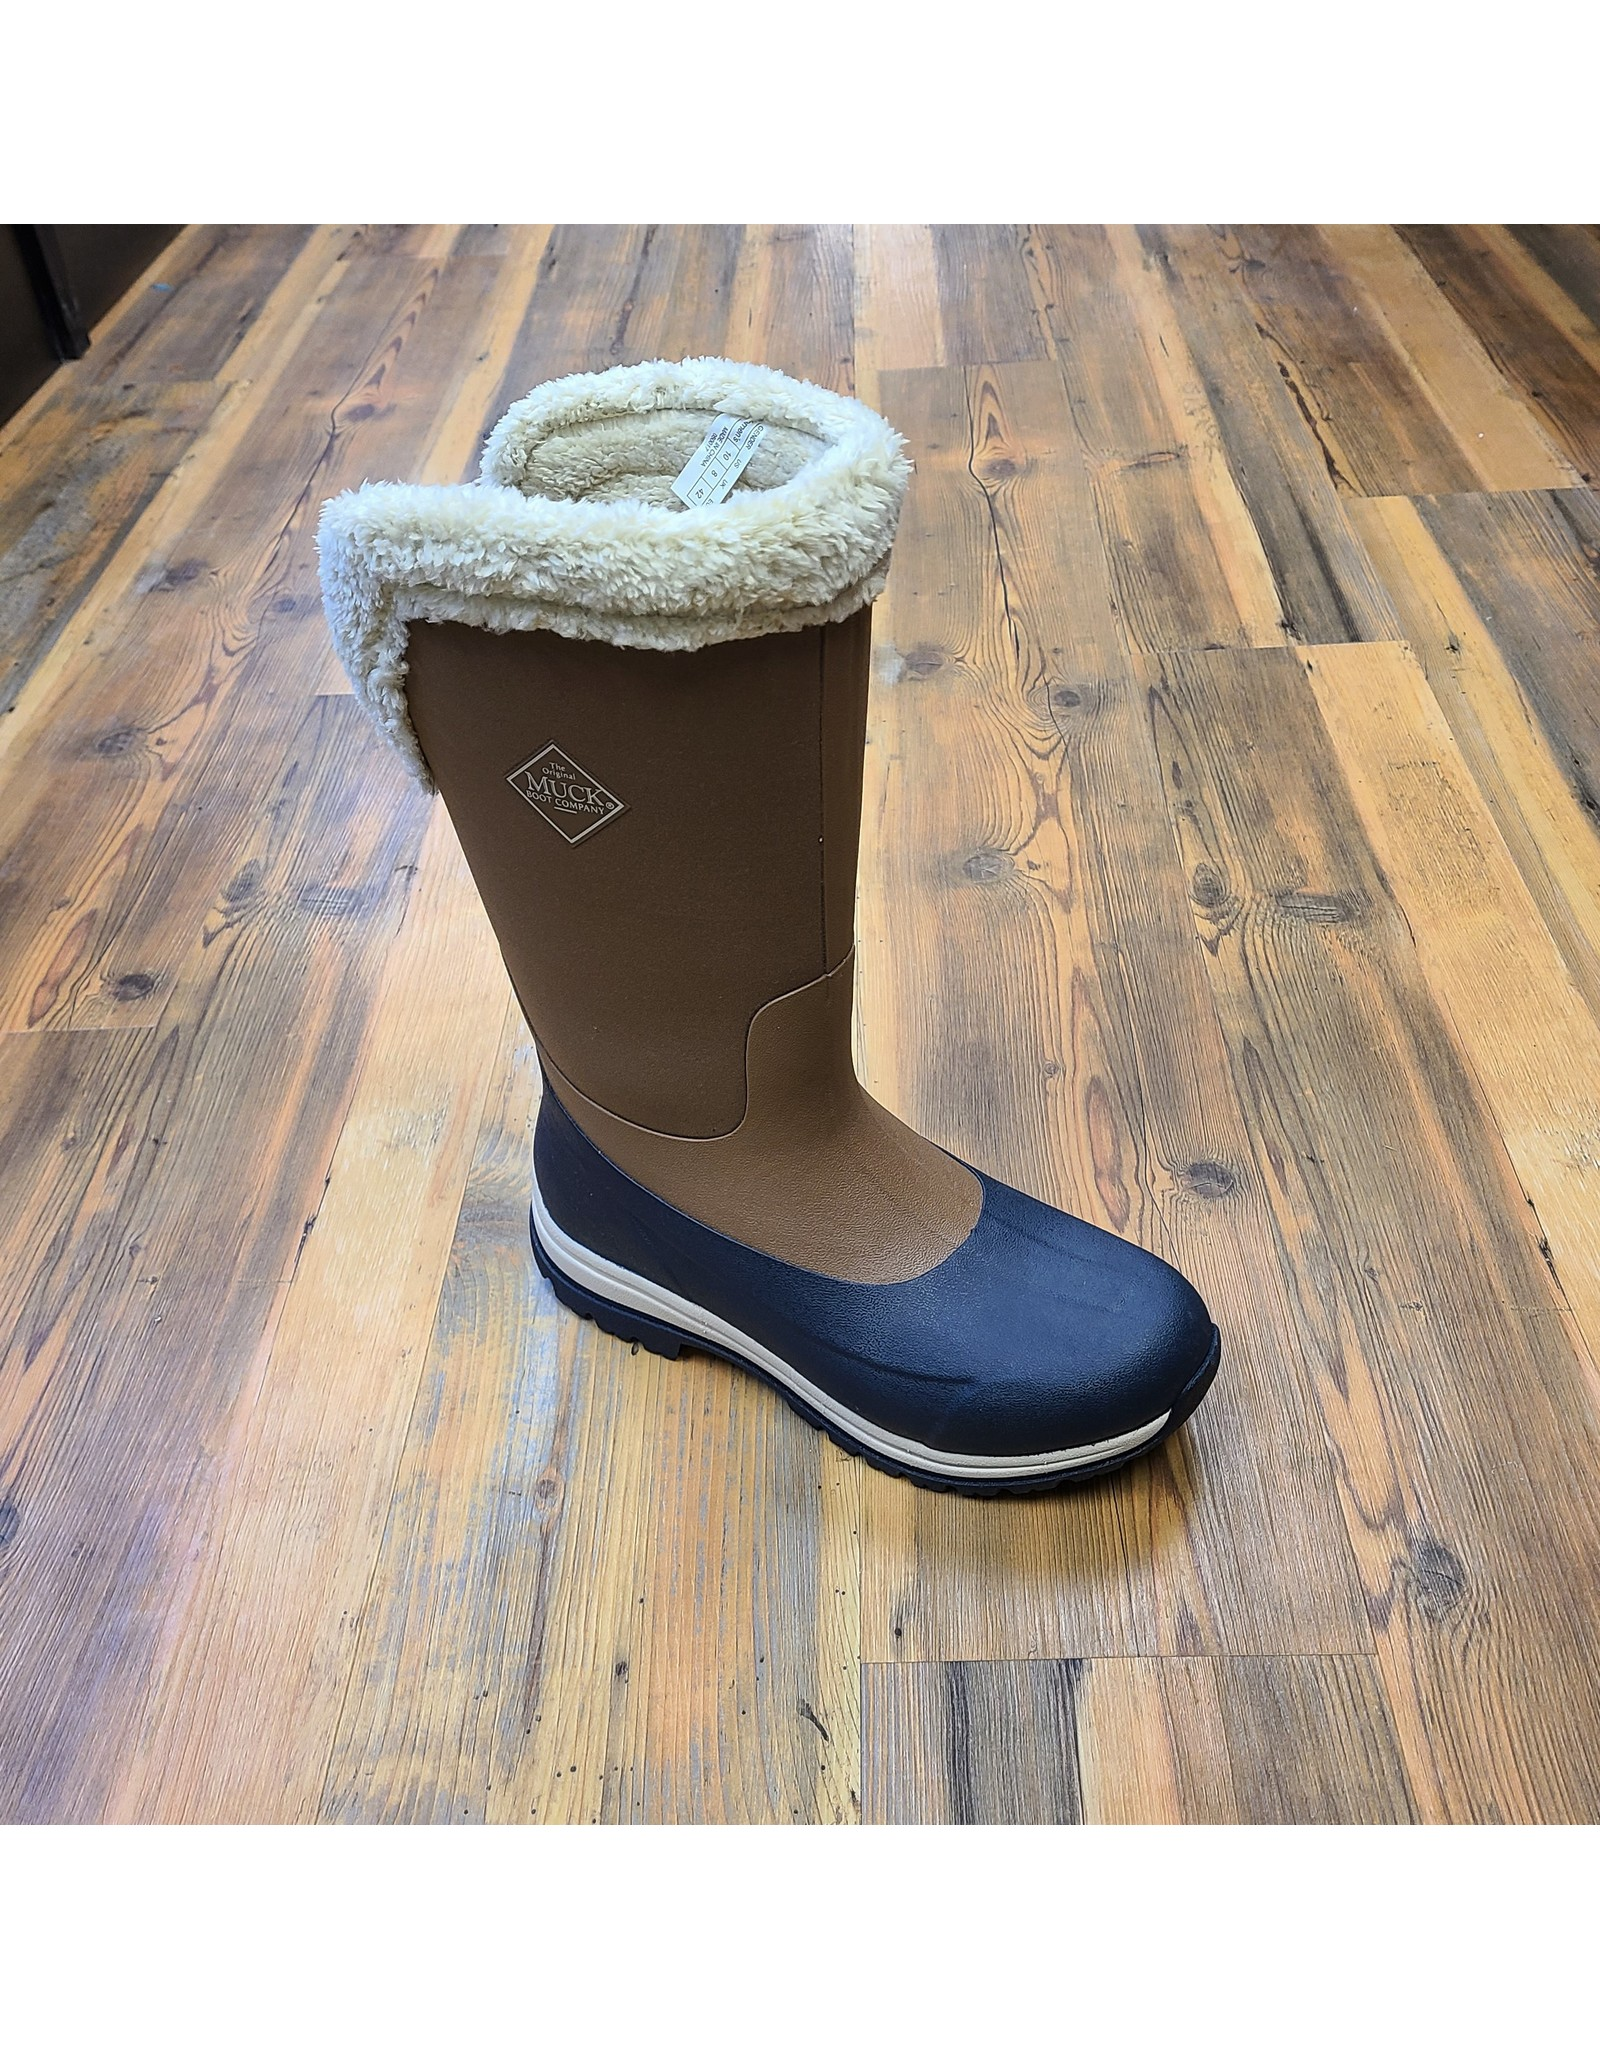 MUCK BOOT COMPANY APRES TALL